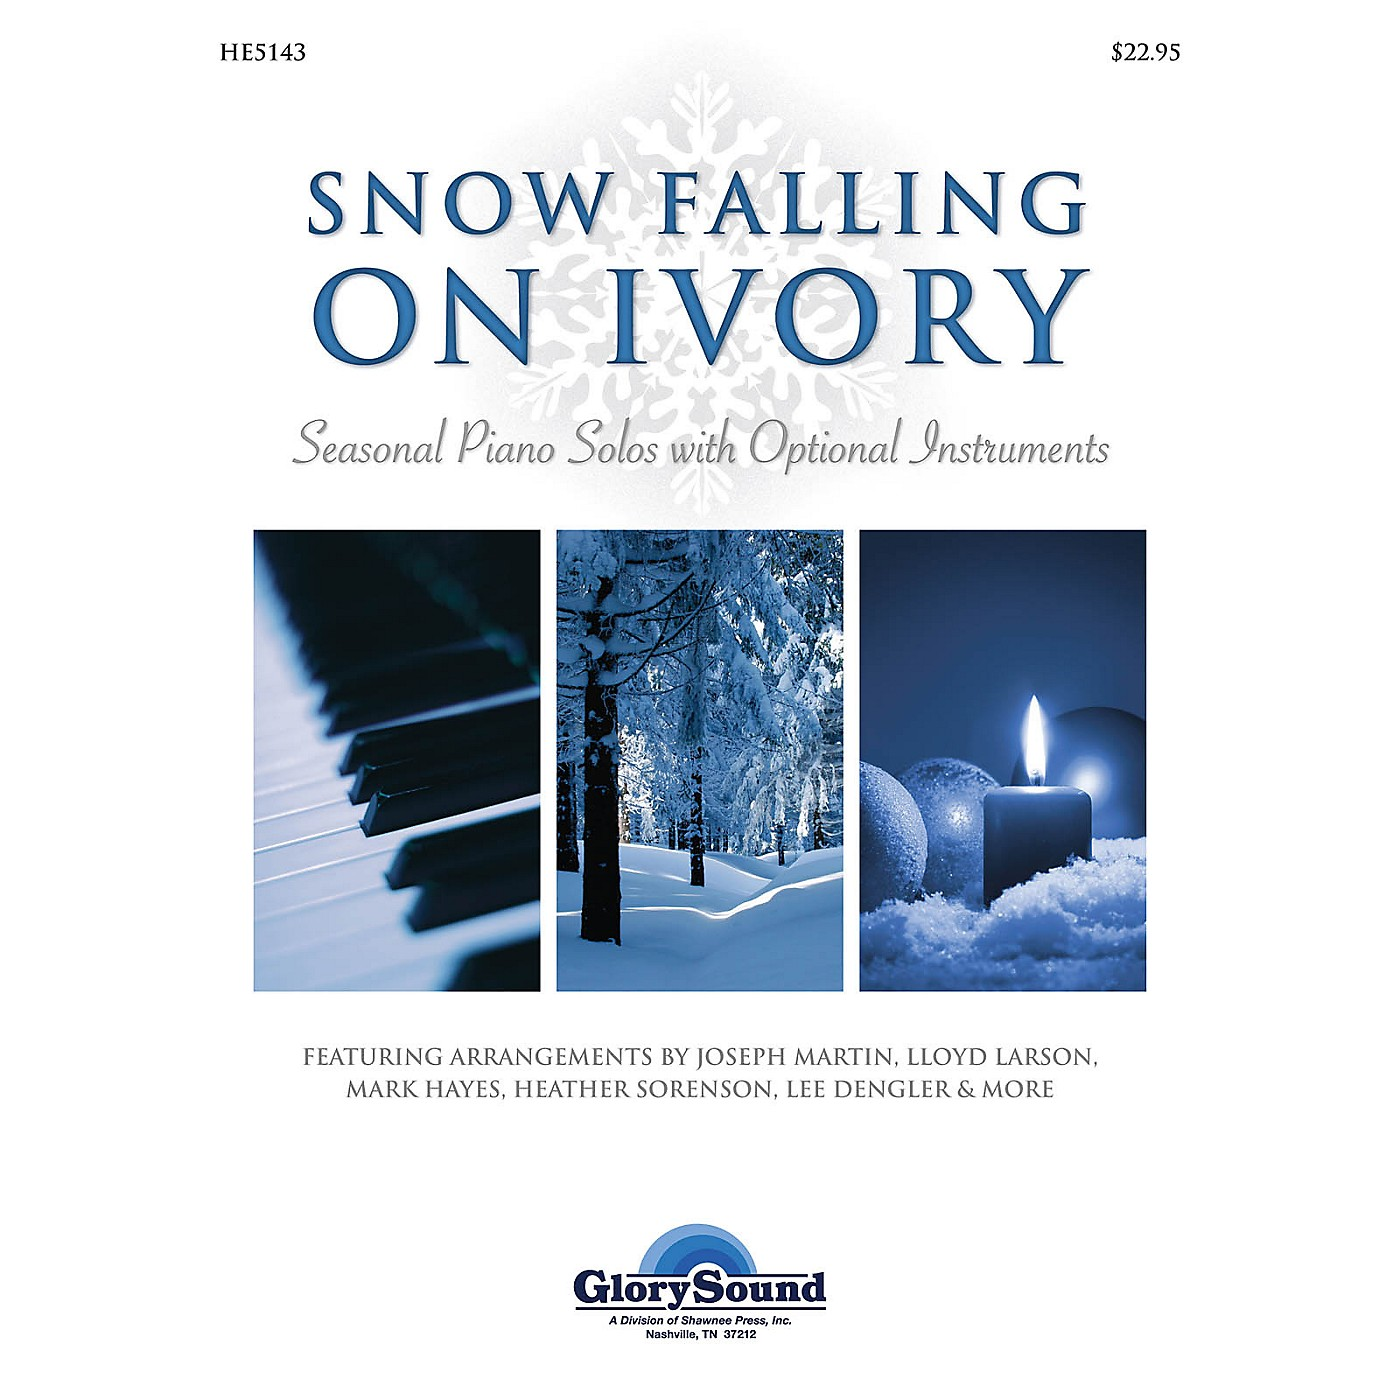 Shawnee Press Snow Falling on Ivory (Seasonal Piano Solos with Optional Instruments) thumbnail